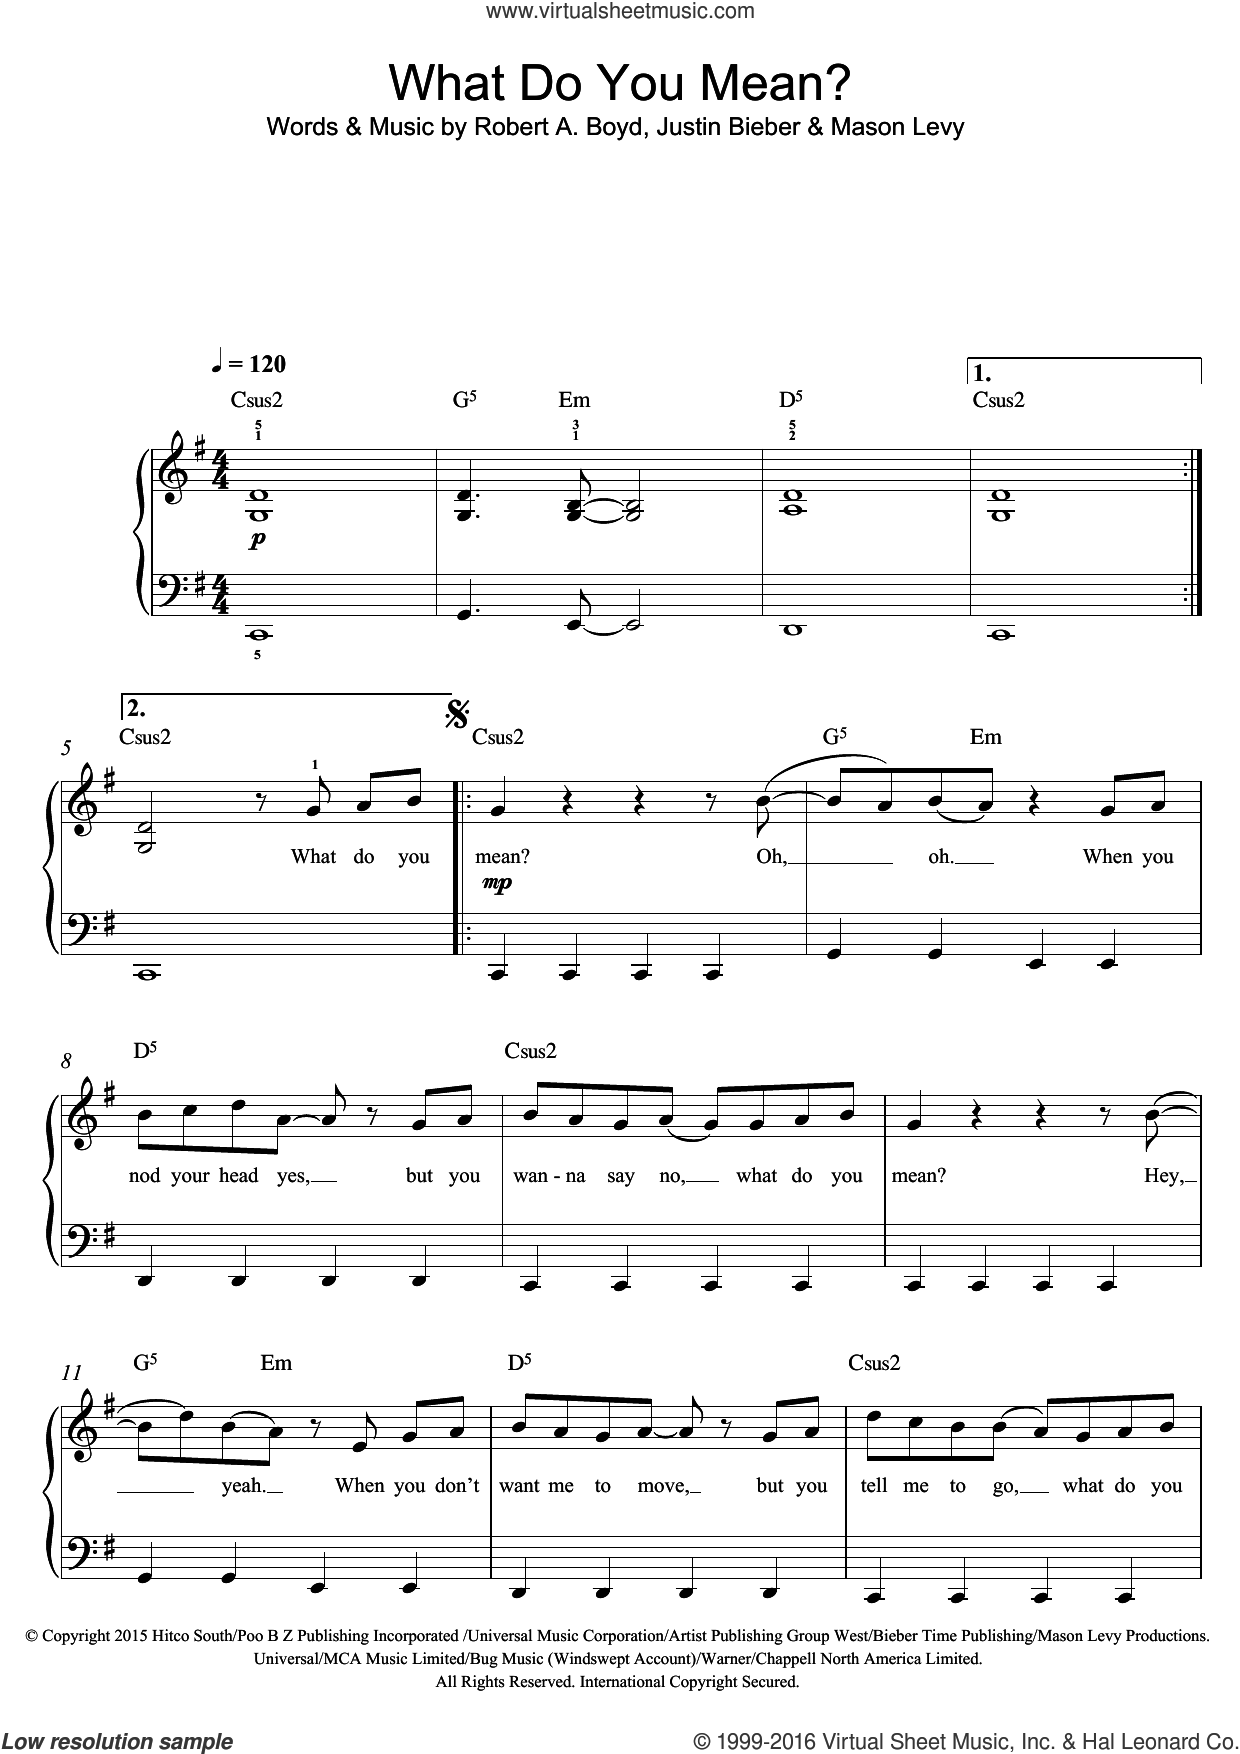 What Do You Mean? sheet music for voice, piano or guitar by Justin Bieber and Mason Levy. Score Image Preview.